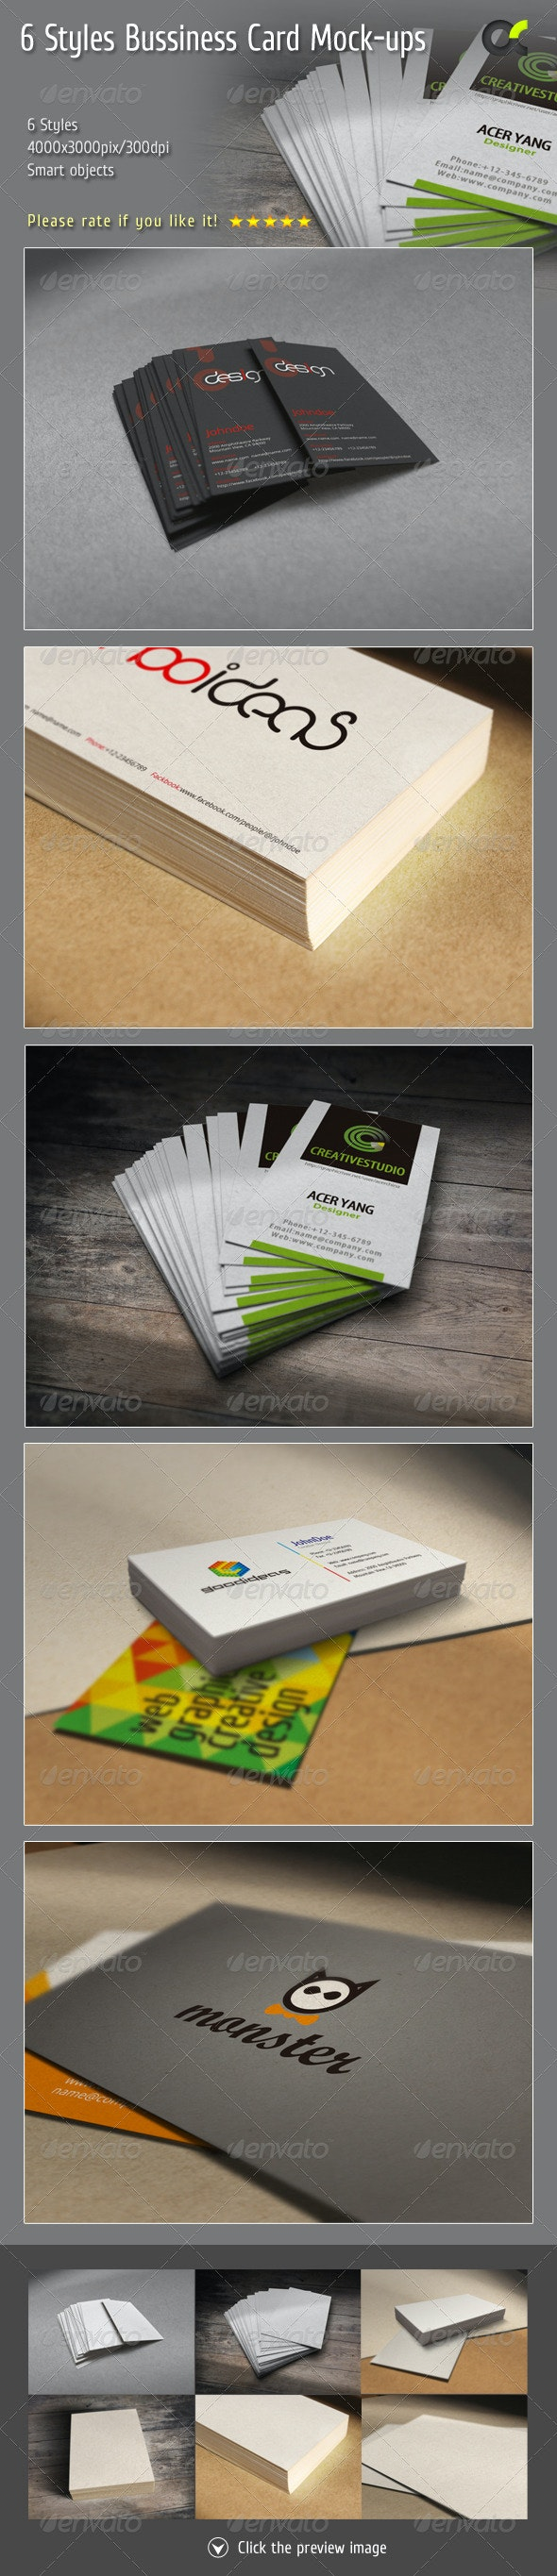 6 Styles Bussiness Card Mock-ups - Product Mock-Ups Graphics